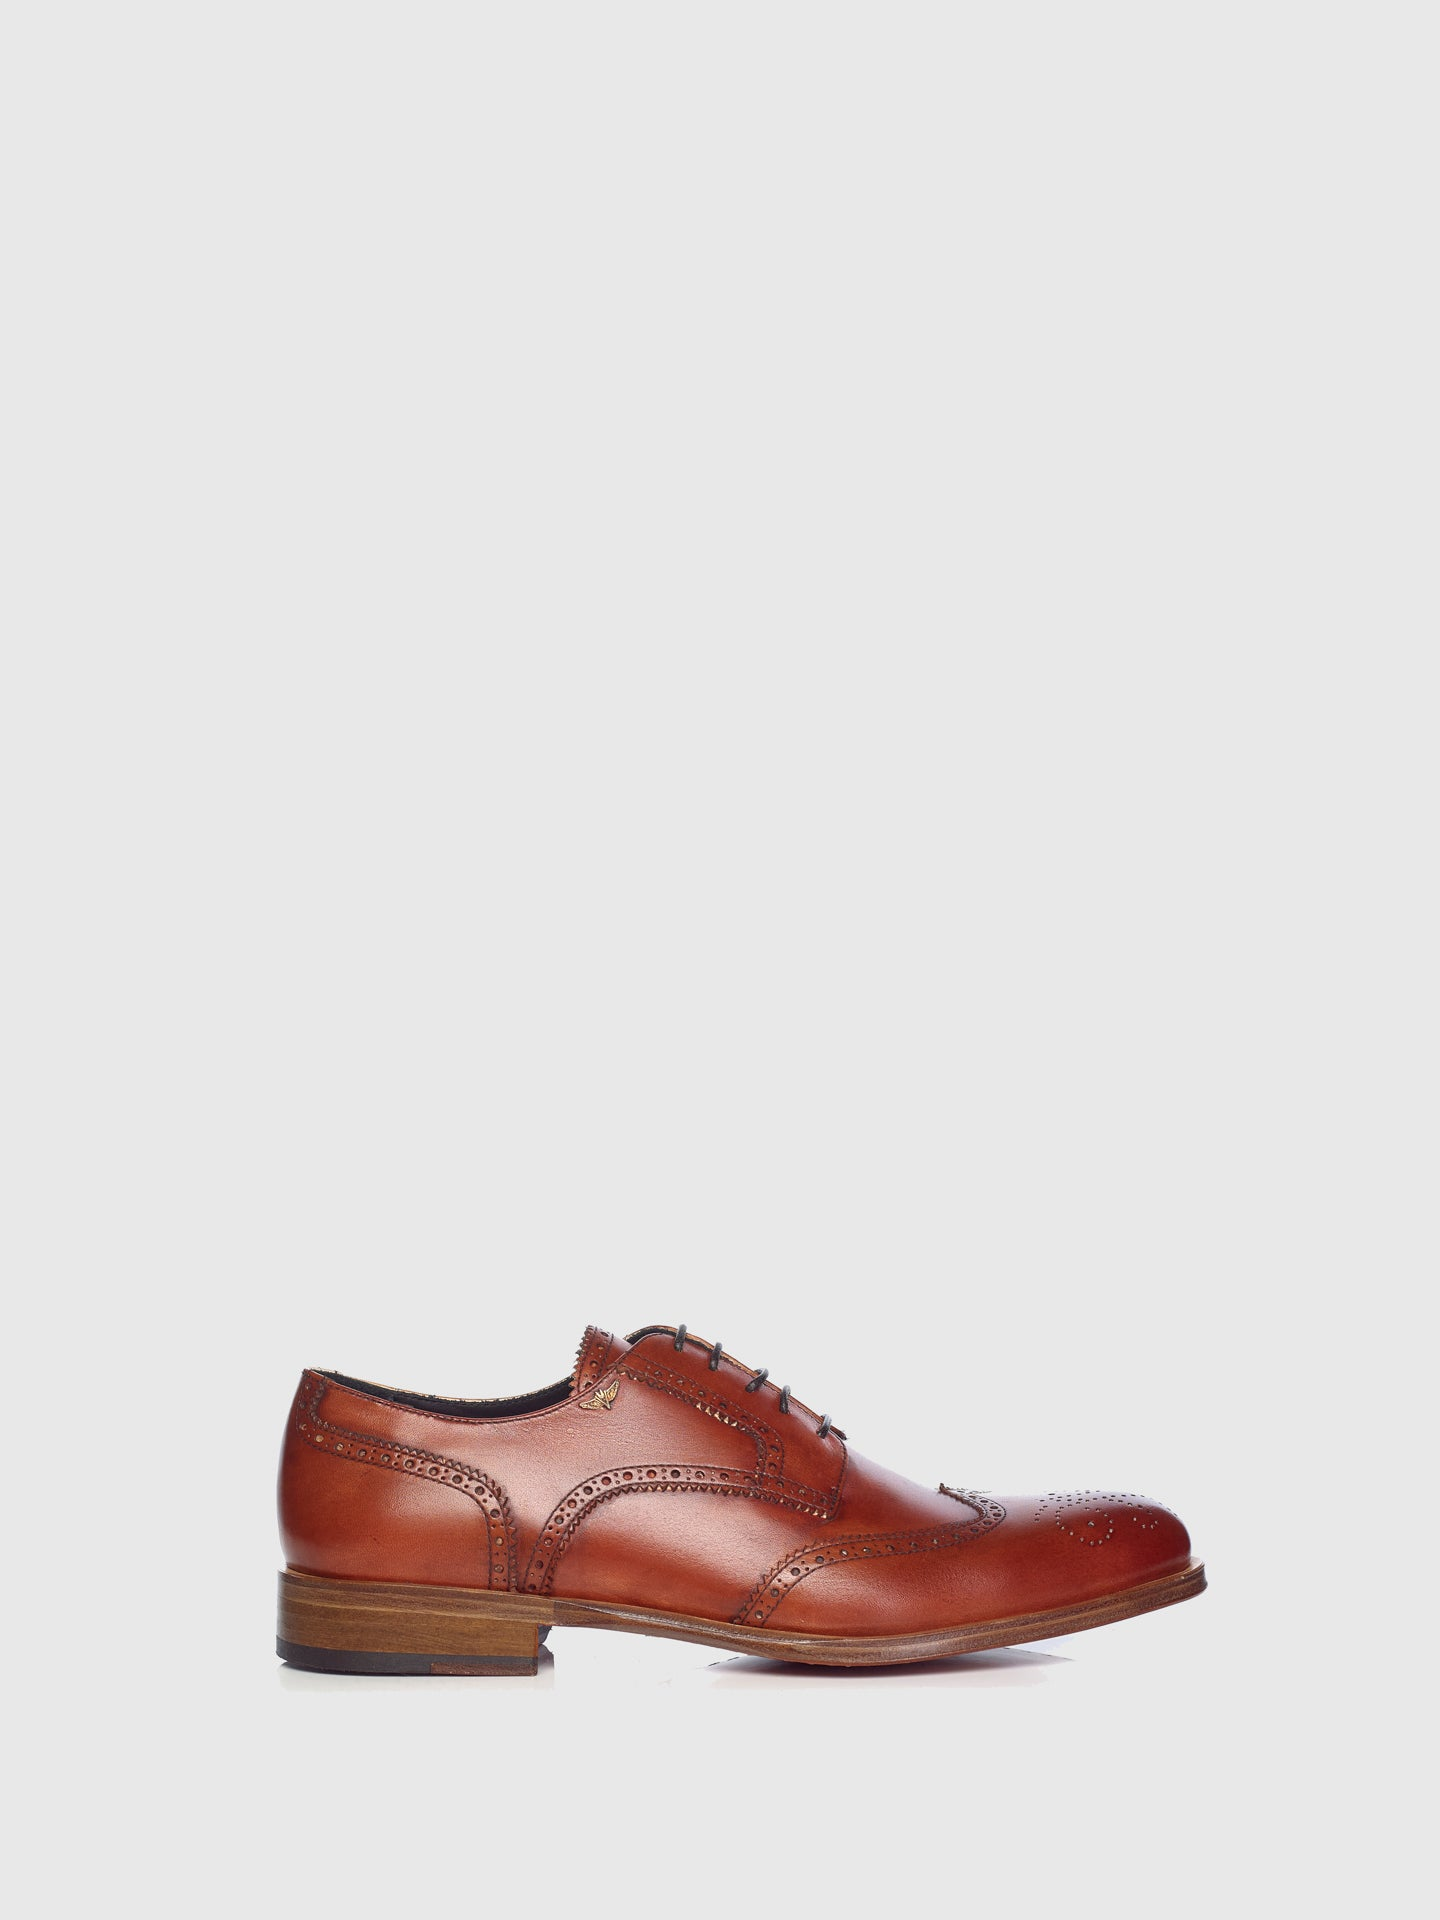 Miguel Vieira Brown Derby Brogue Shoes